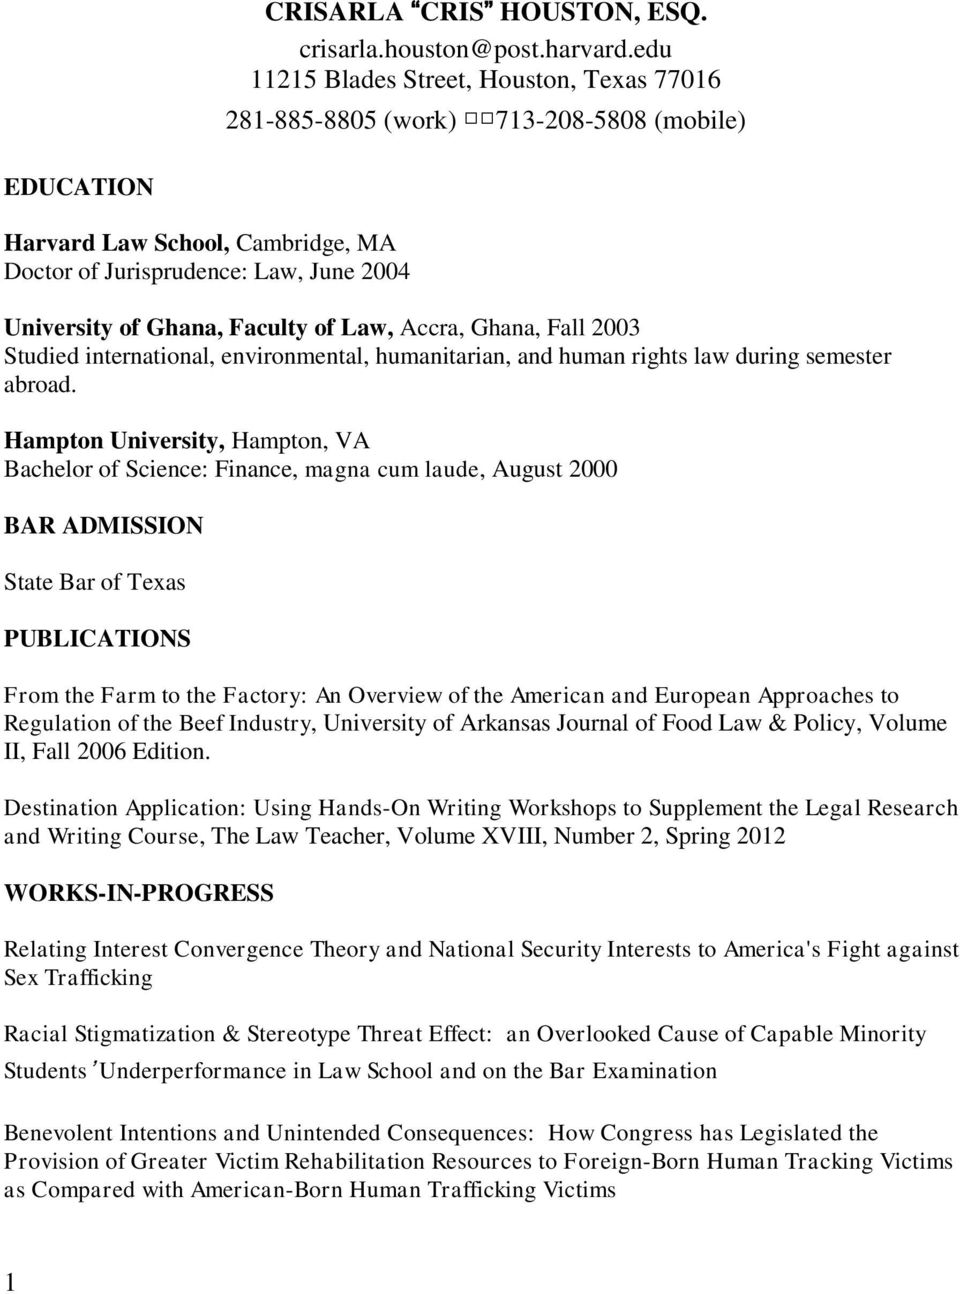 Information Sheet Template Dissertation Defense